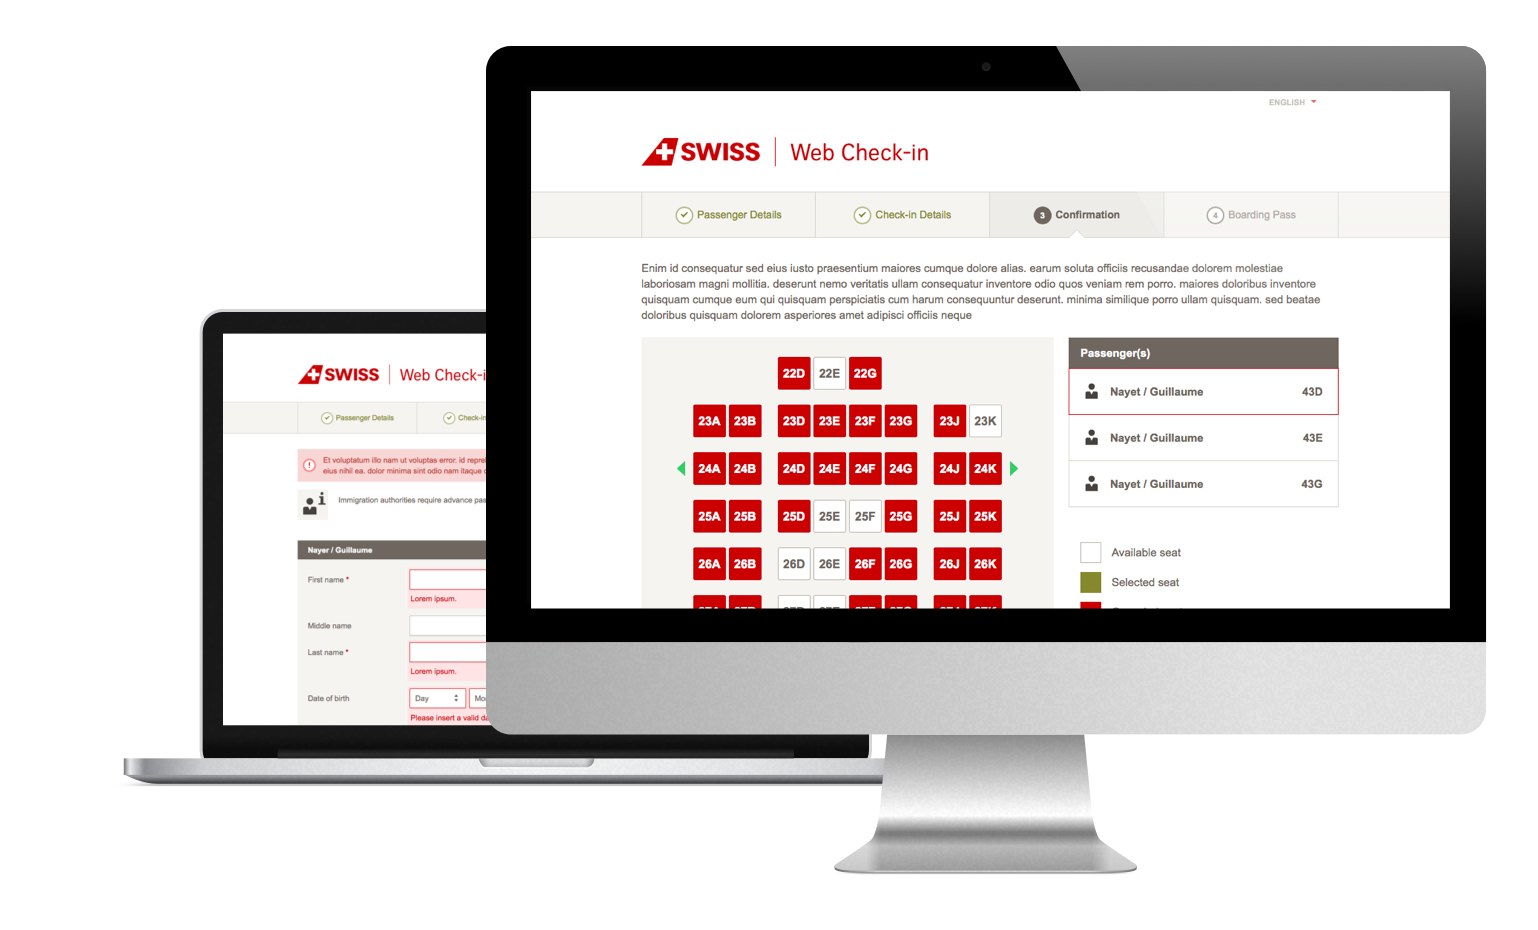 Screenshots of the Swiss.com Web Check-in website on different devices showcasing the responsive design